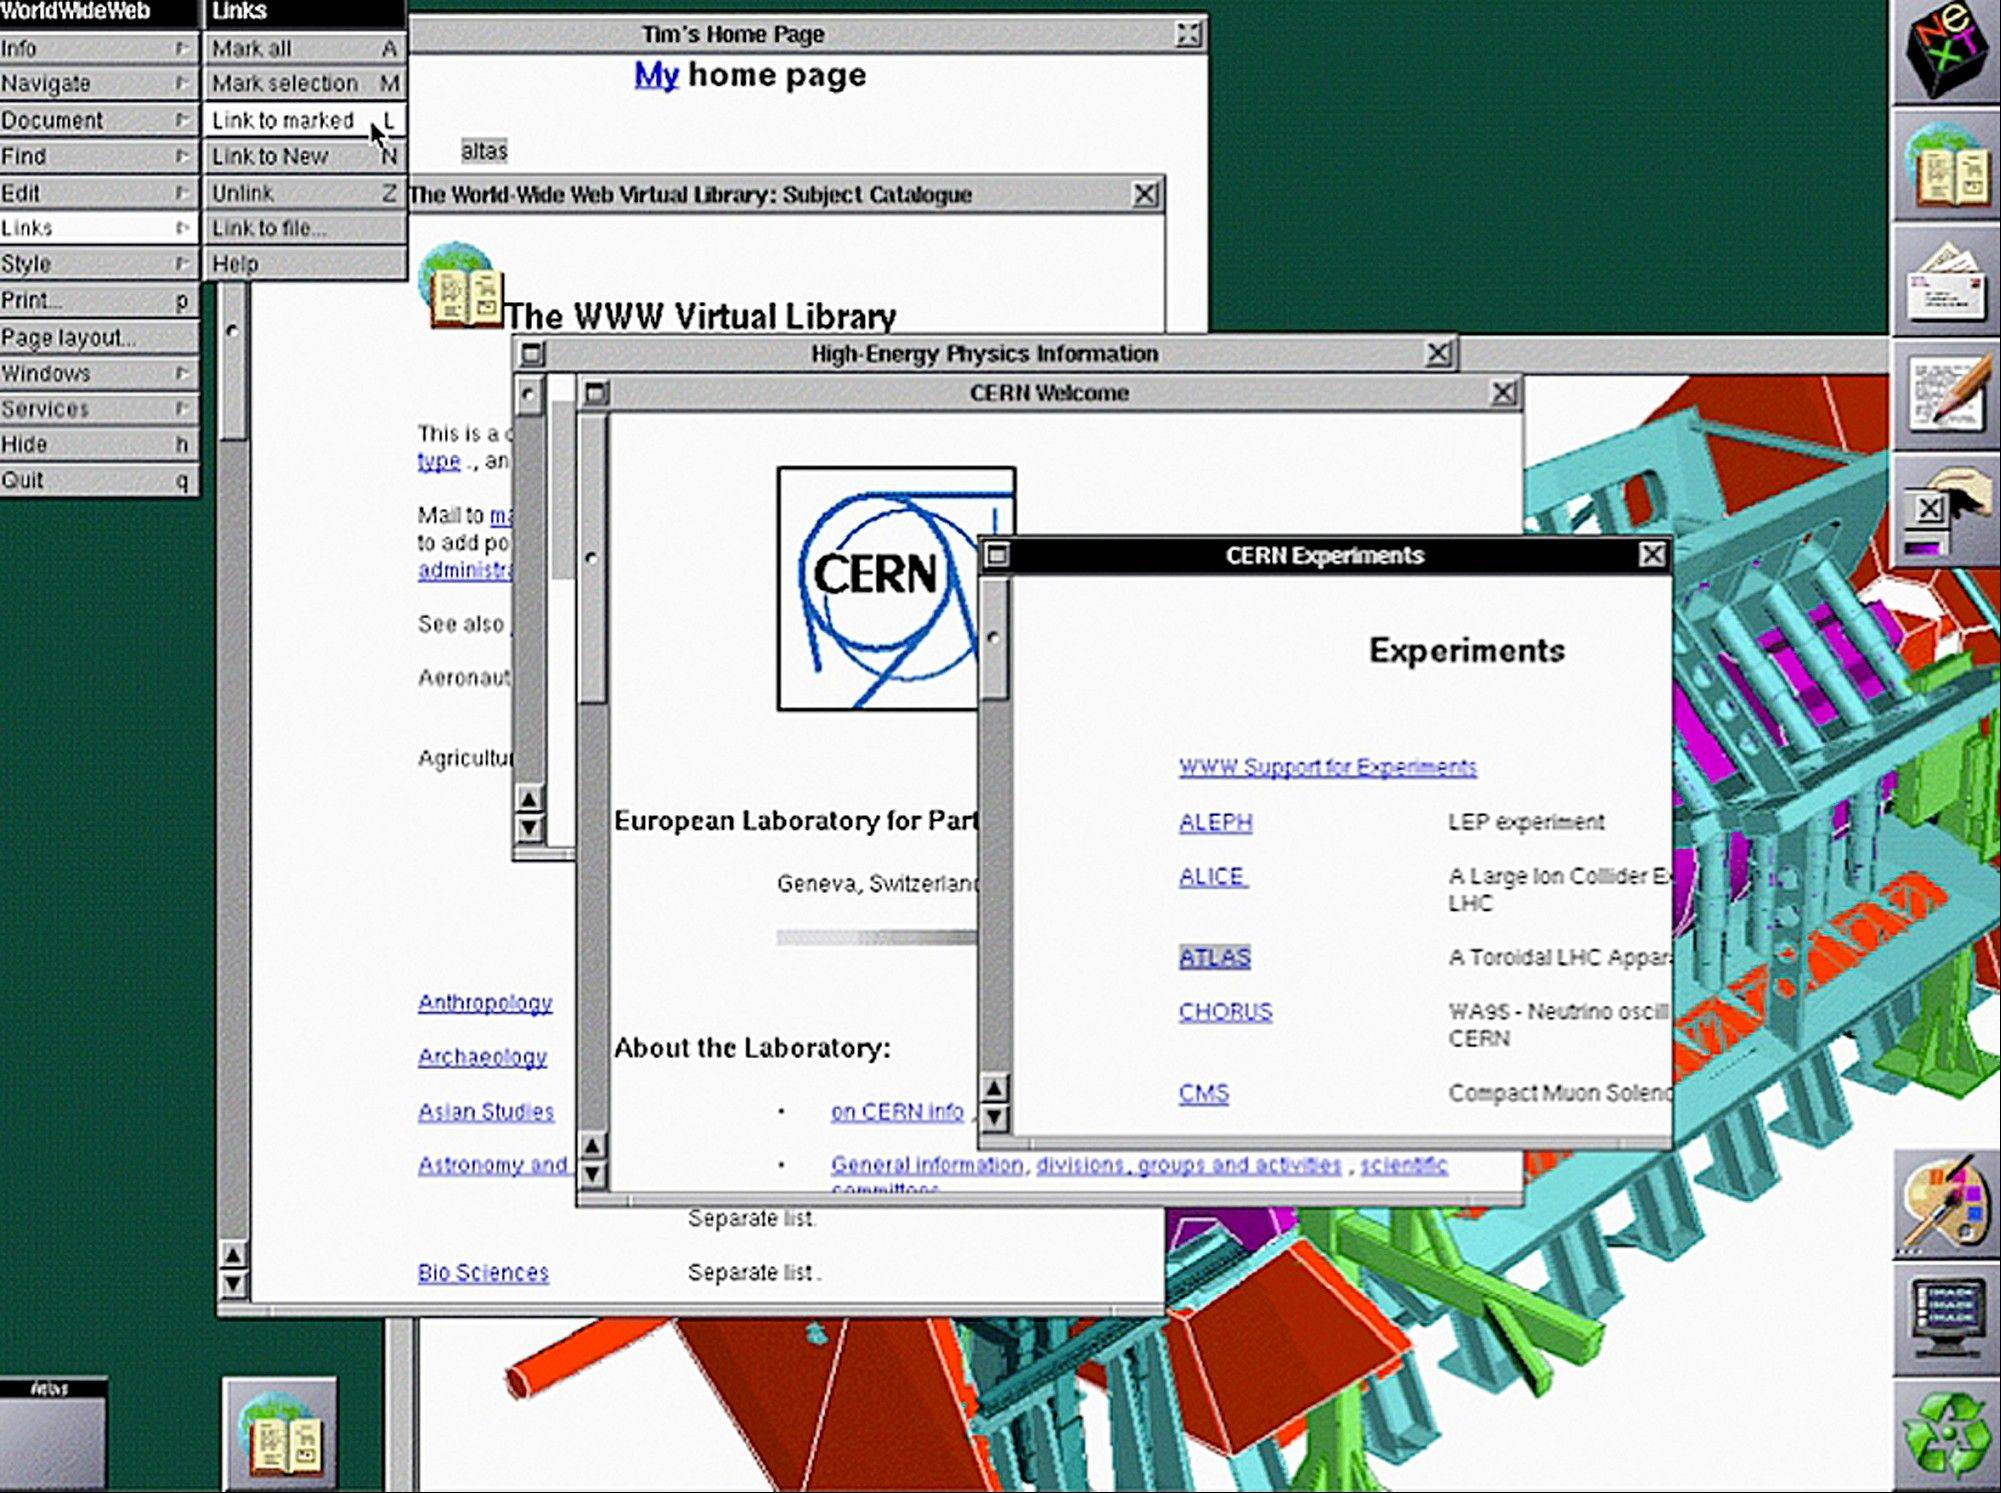 In this image provided by The European Organization for Nuclear Research, or CERN, a screenshot of the original NeXT web browser in 1993 is seen. The scientists at the European Organization for Nuclear Research, known by its French acronym CERN, are searching for the first Web page. It was at CERN that Tim Berners-Lee invented the Web in 1990 as an unsanctioned project, using a NeXT computer that Apple co-founder Steve Jobs designed in the late 80s during his 12-year exile from the company.